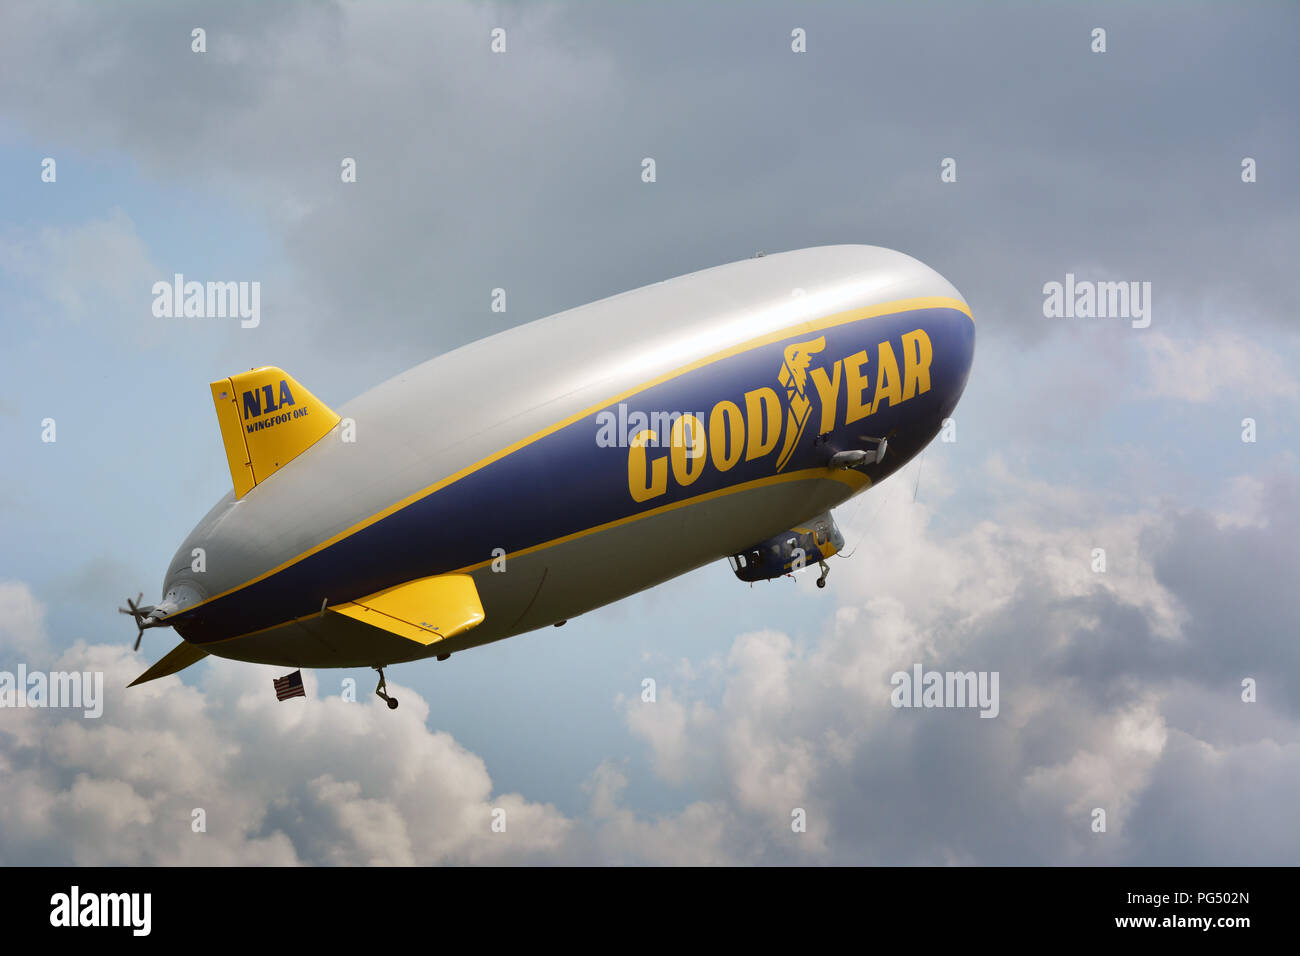 The 246-foot-long blimp at Wyoming Valley Airport in Forty Fort PA.on Tues afternoon 8-20-2018. Wingfoot One is a new generation of Goodyear blimps. Stock Photo